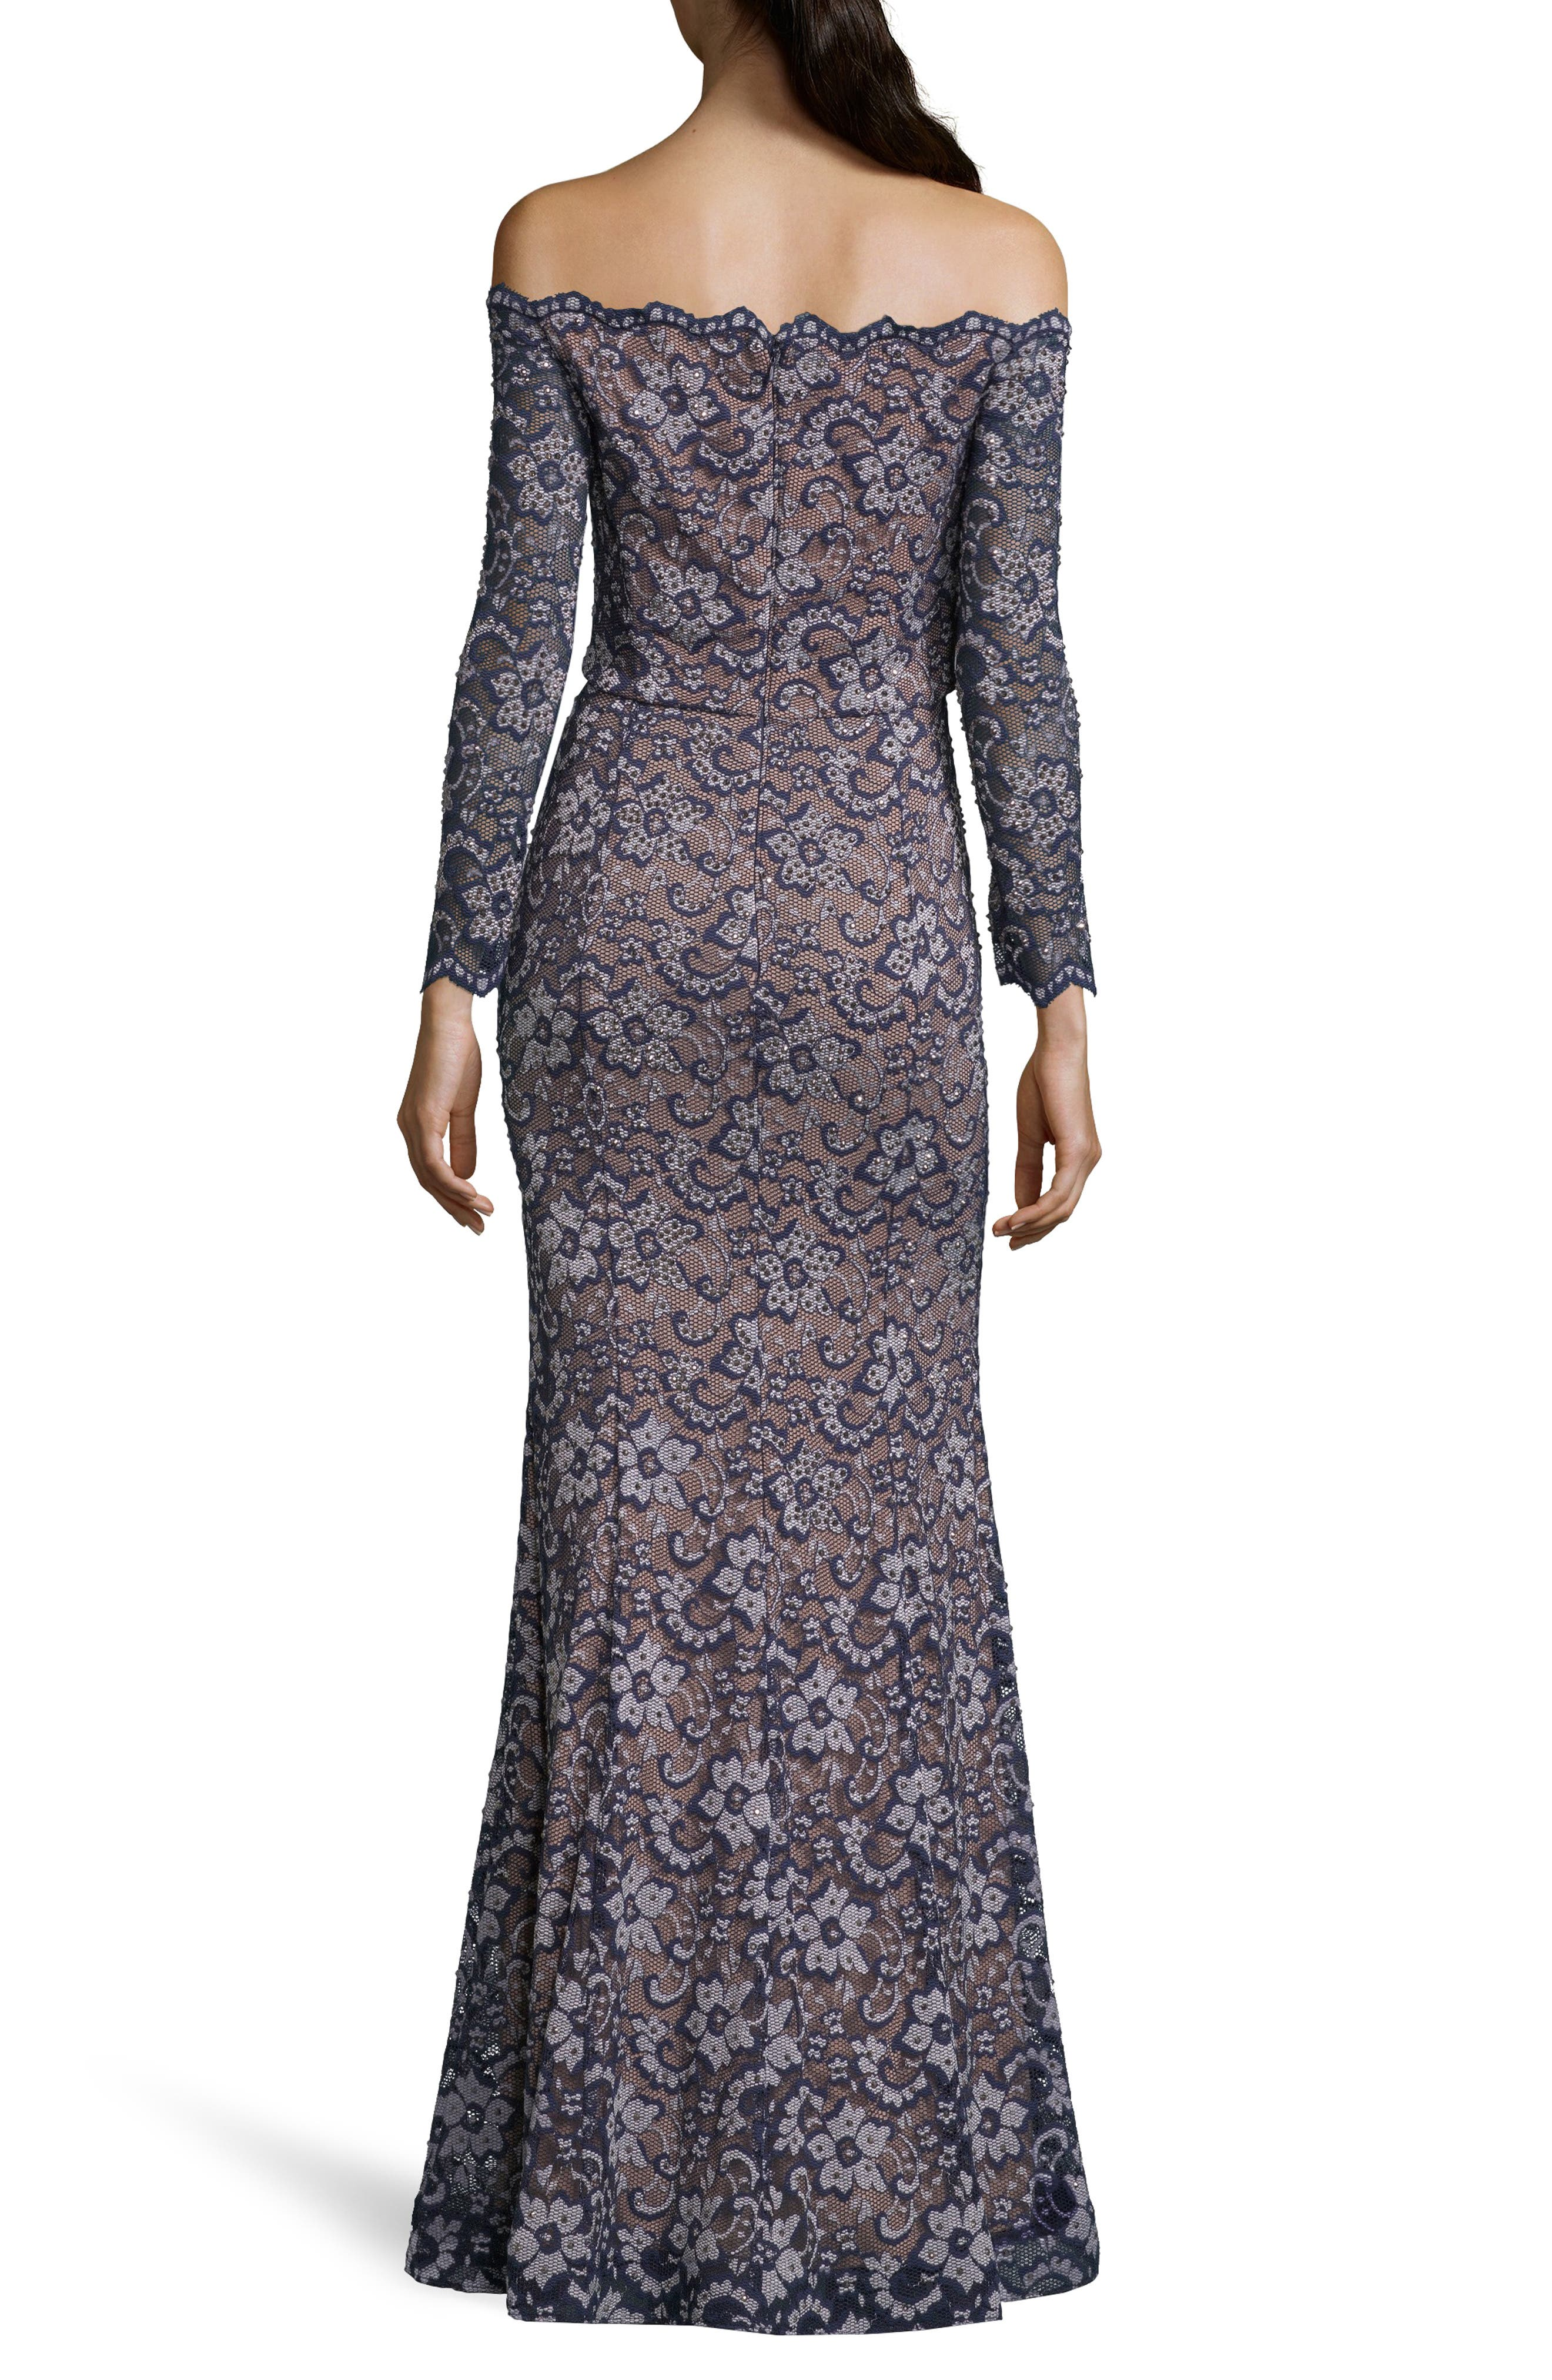 XSCAPE,                             Off the Shoulder Lace Evening Dress,                             Alternate thumbnail 2, color,                             NAVY/ NUDE